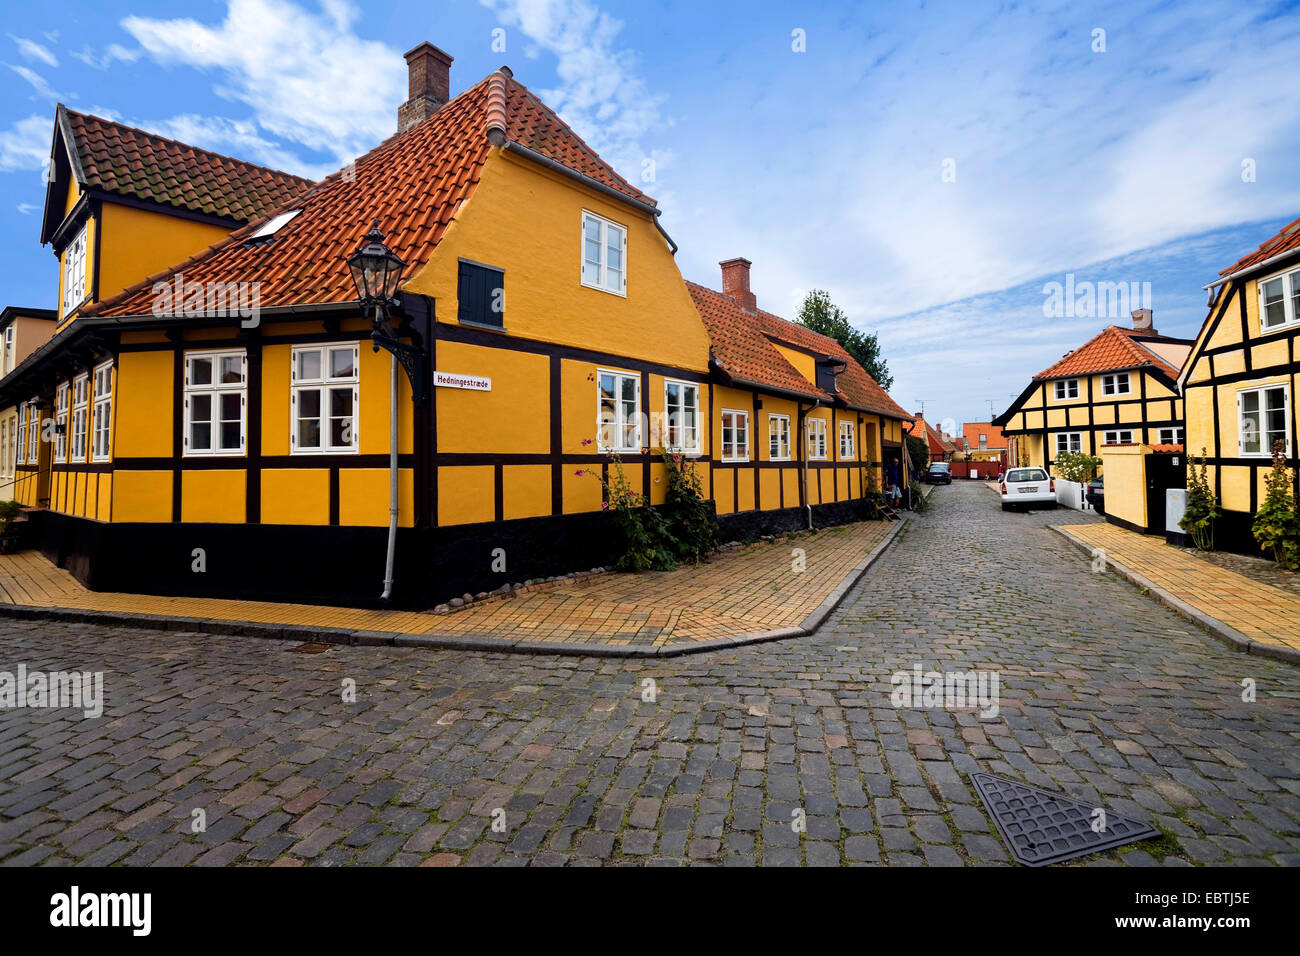 alley with half-timbered houses, Denmark, Bornholm, Roenne - Stock Image